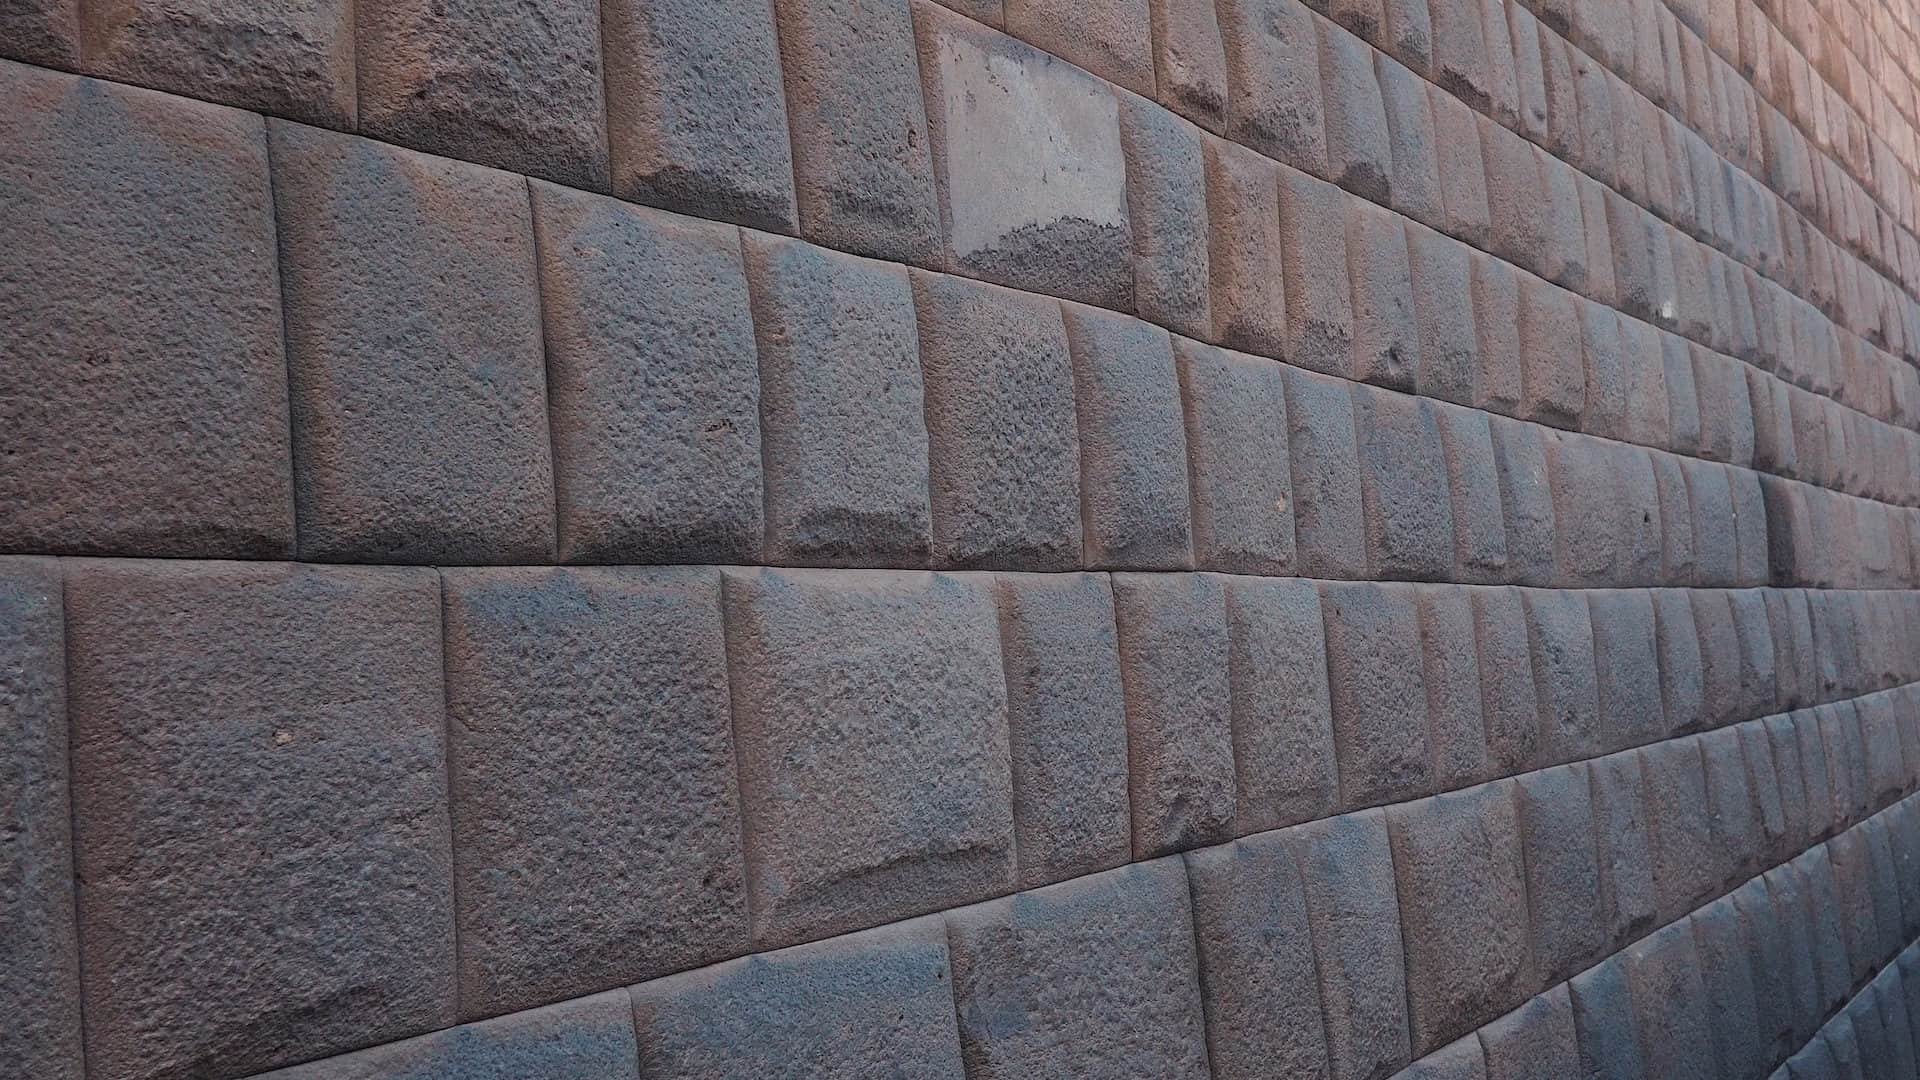 Large square stones in a wall